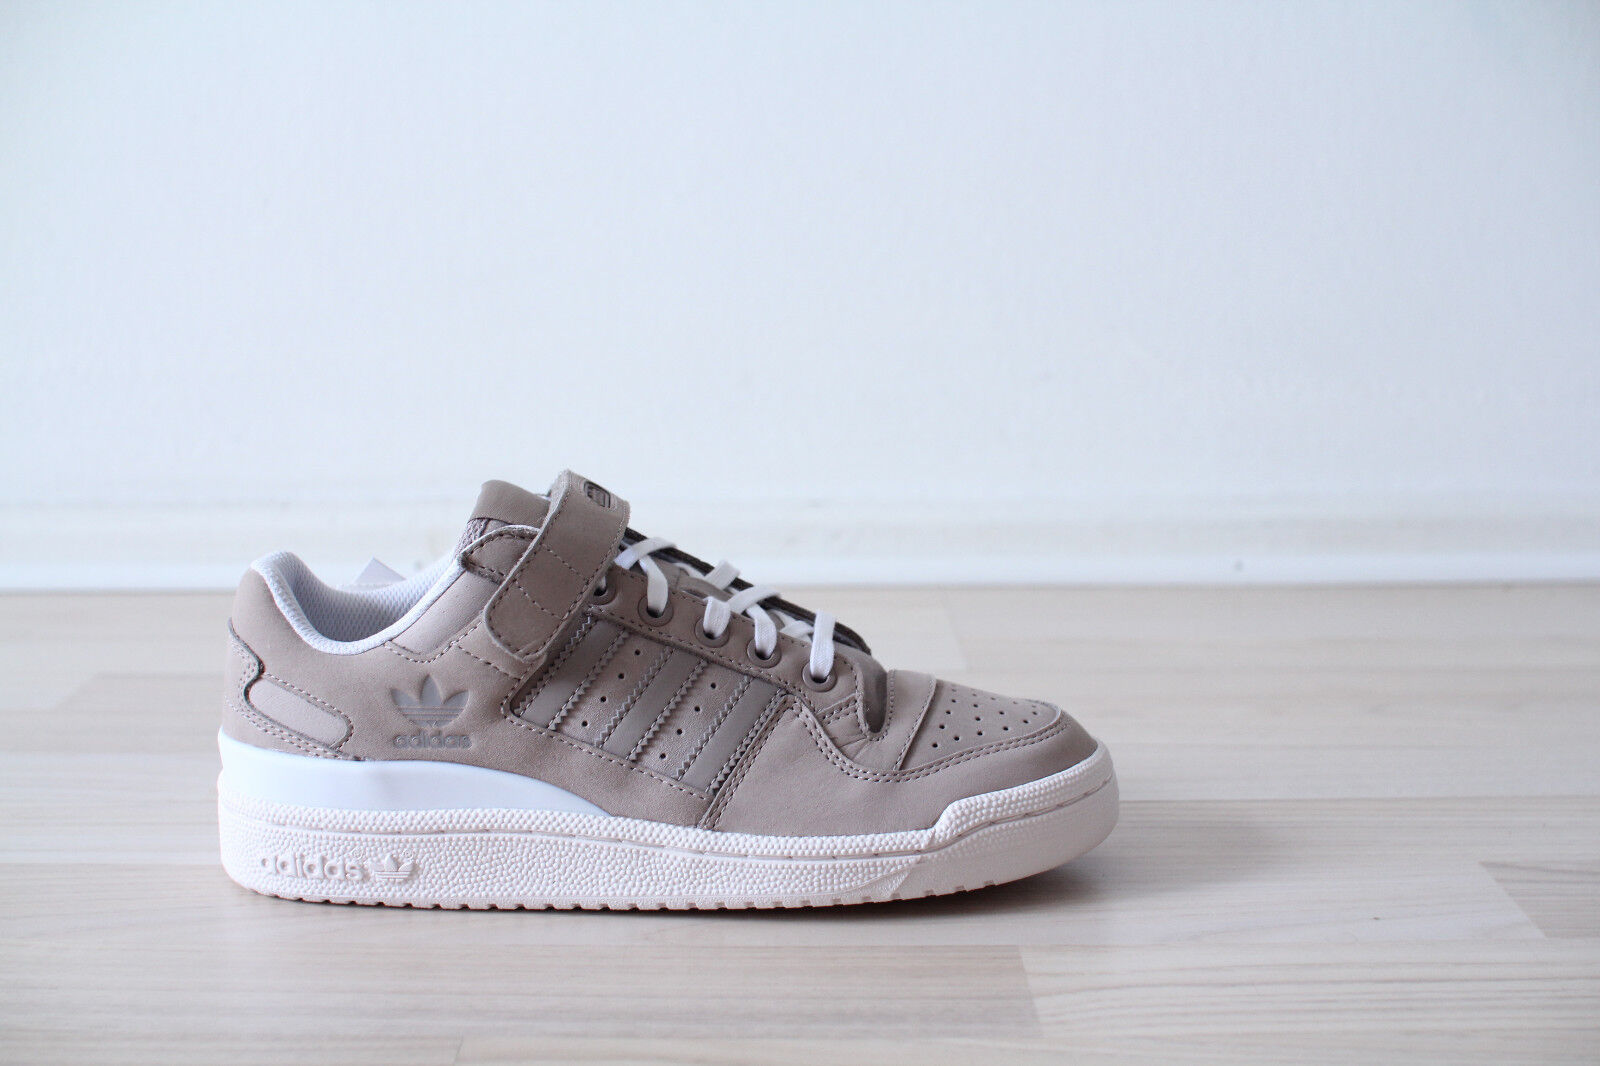 Gr36 Forum 41 Ovp 38 Adidas 46 44 43 Beige Neuamp; Low 40 39 37 45 42 Weiß AL45jR3